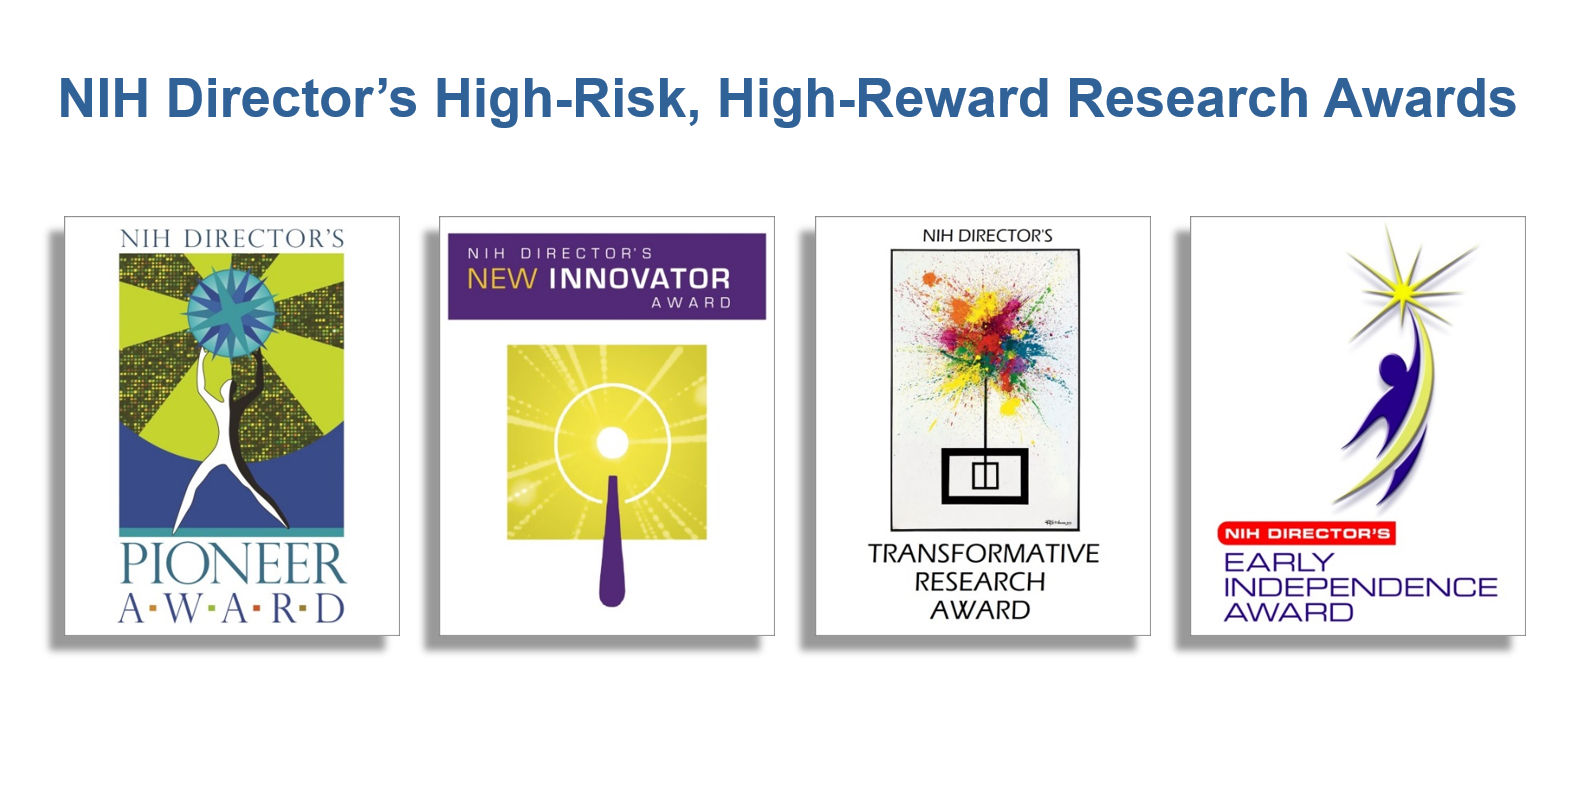 Graphic Identities of the High-Risk, High-Reward Research Program